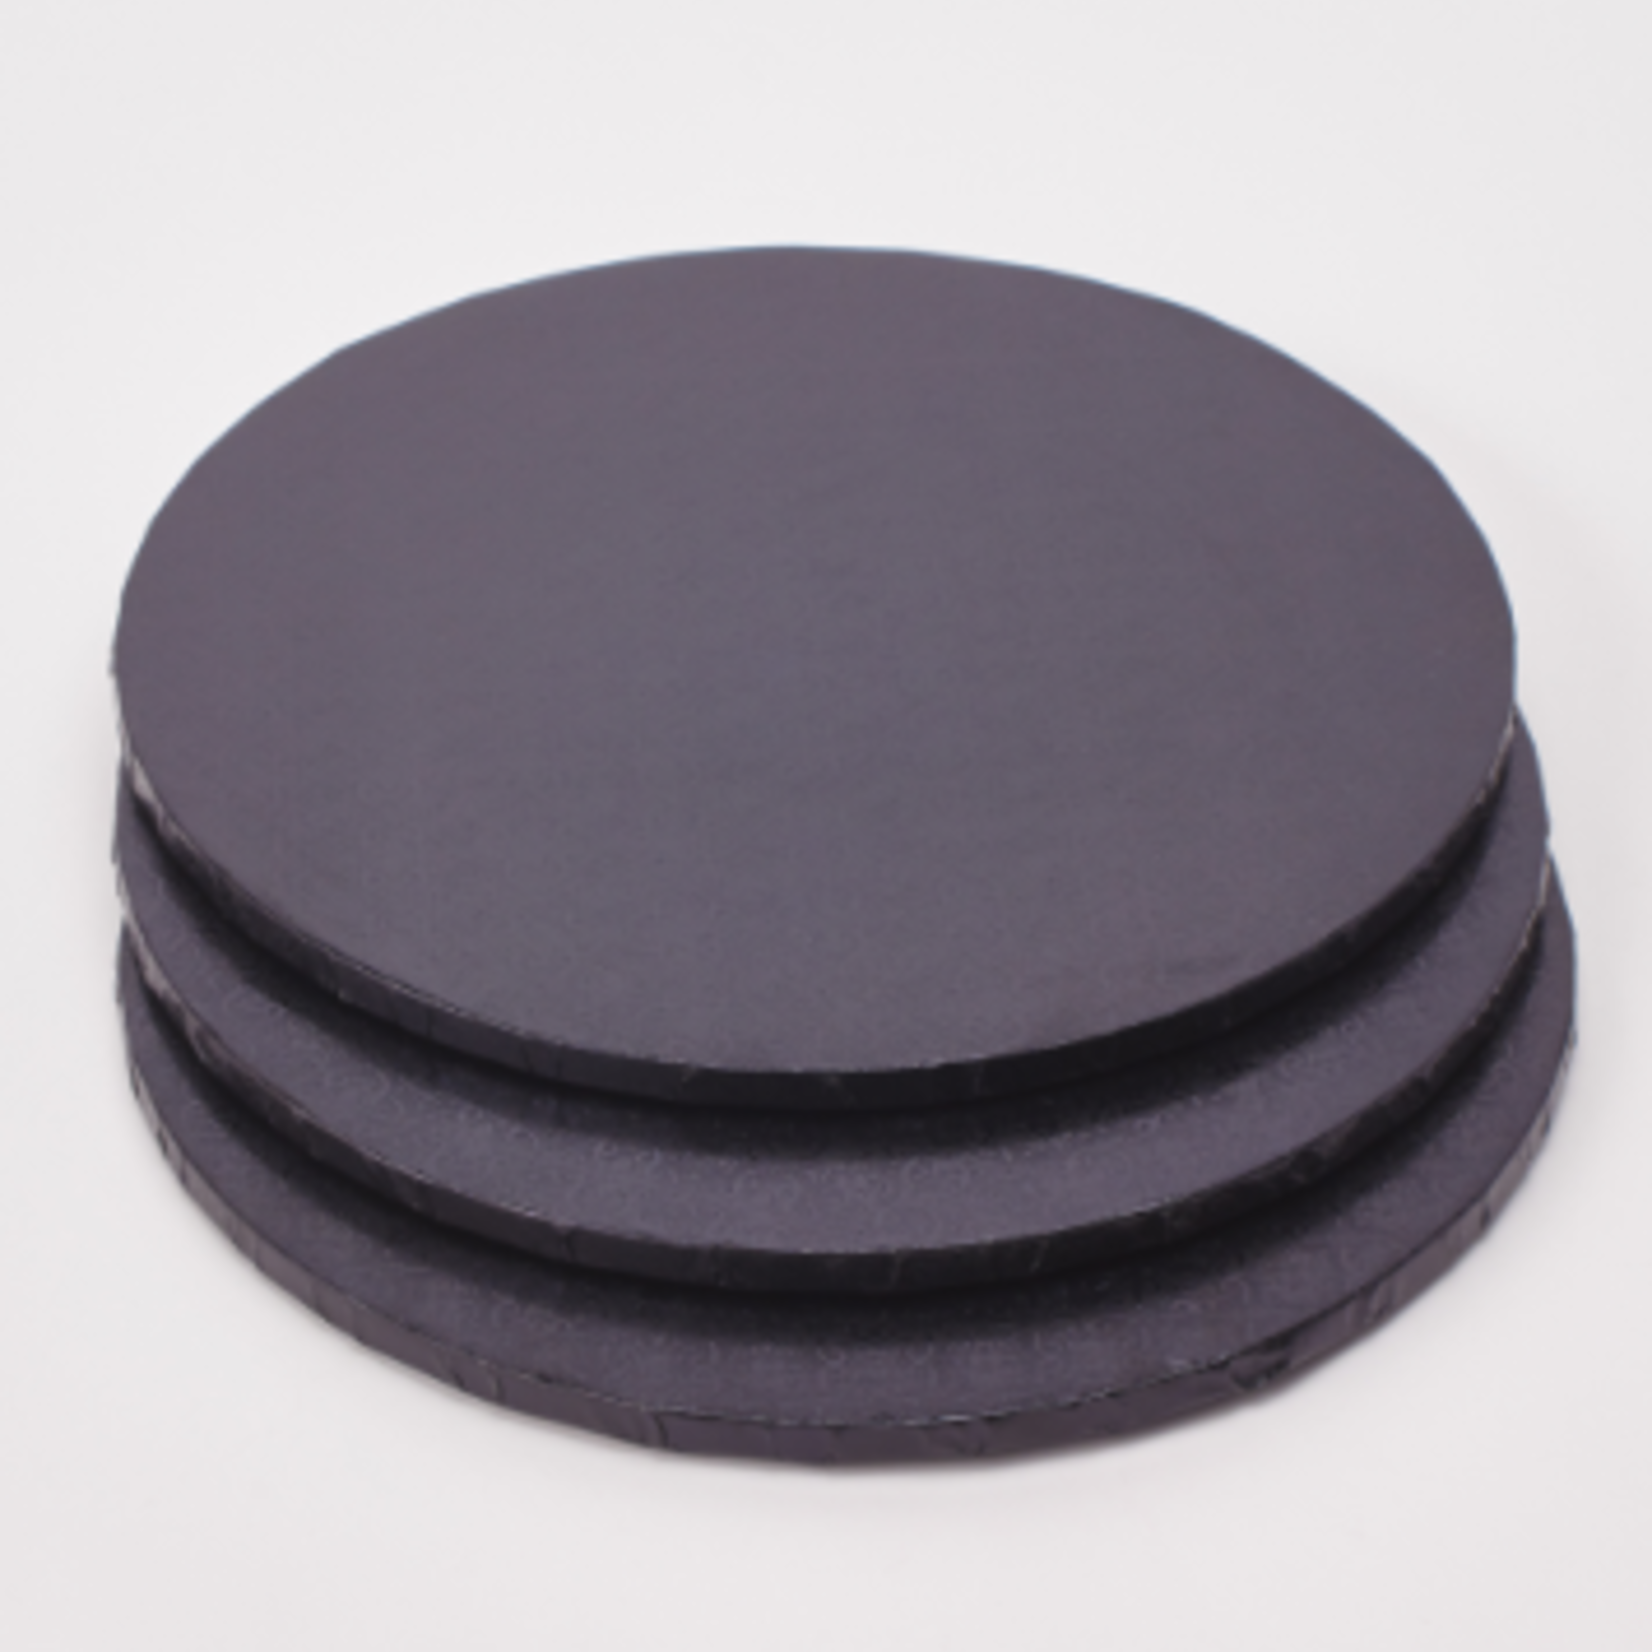 14'' BLACK FOIL COVERED CAKE BOARD (sold individually)